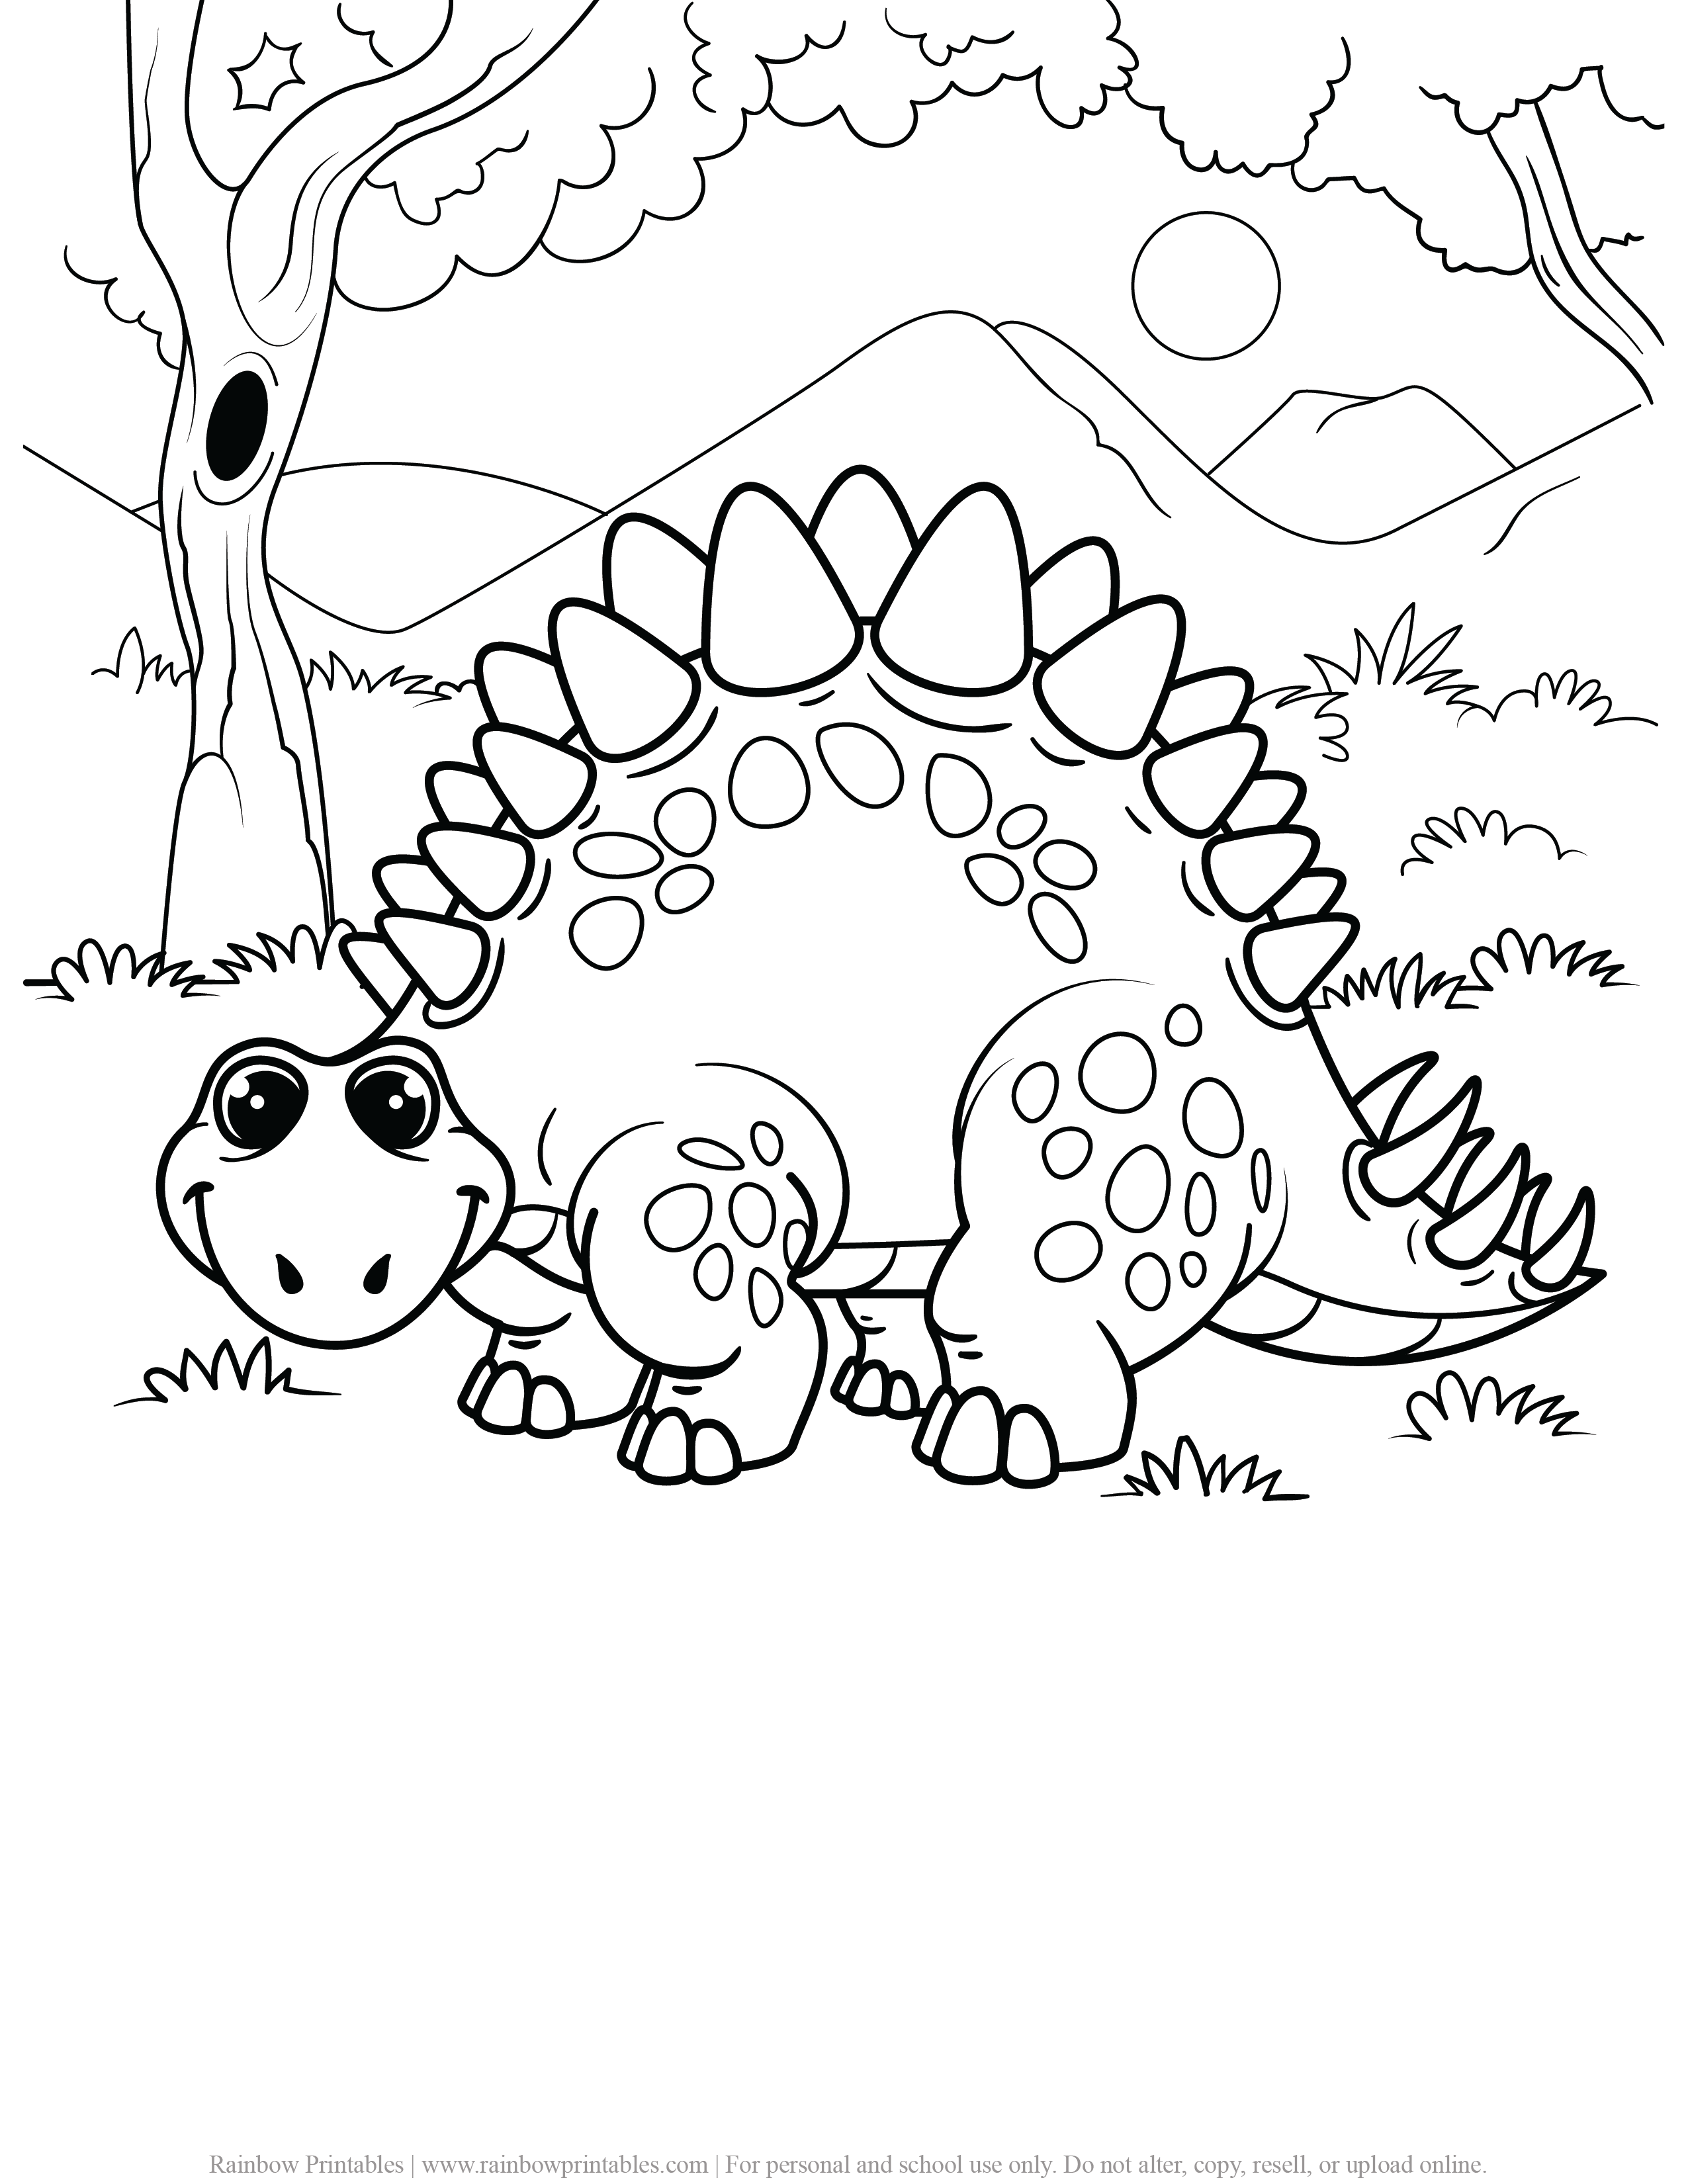 FREE DINOSAUR COLORING PAGES ACTIVITY FOR KIDS AND BOYS DINO DRAGON PRINTABLE-19